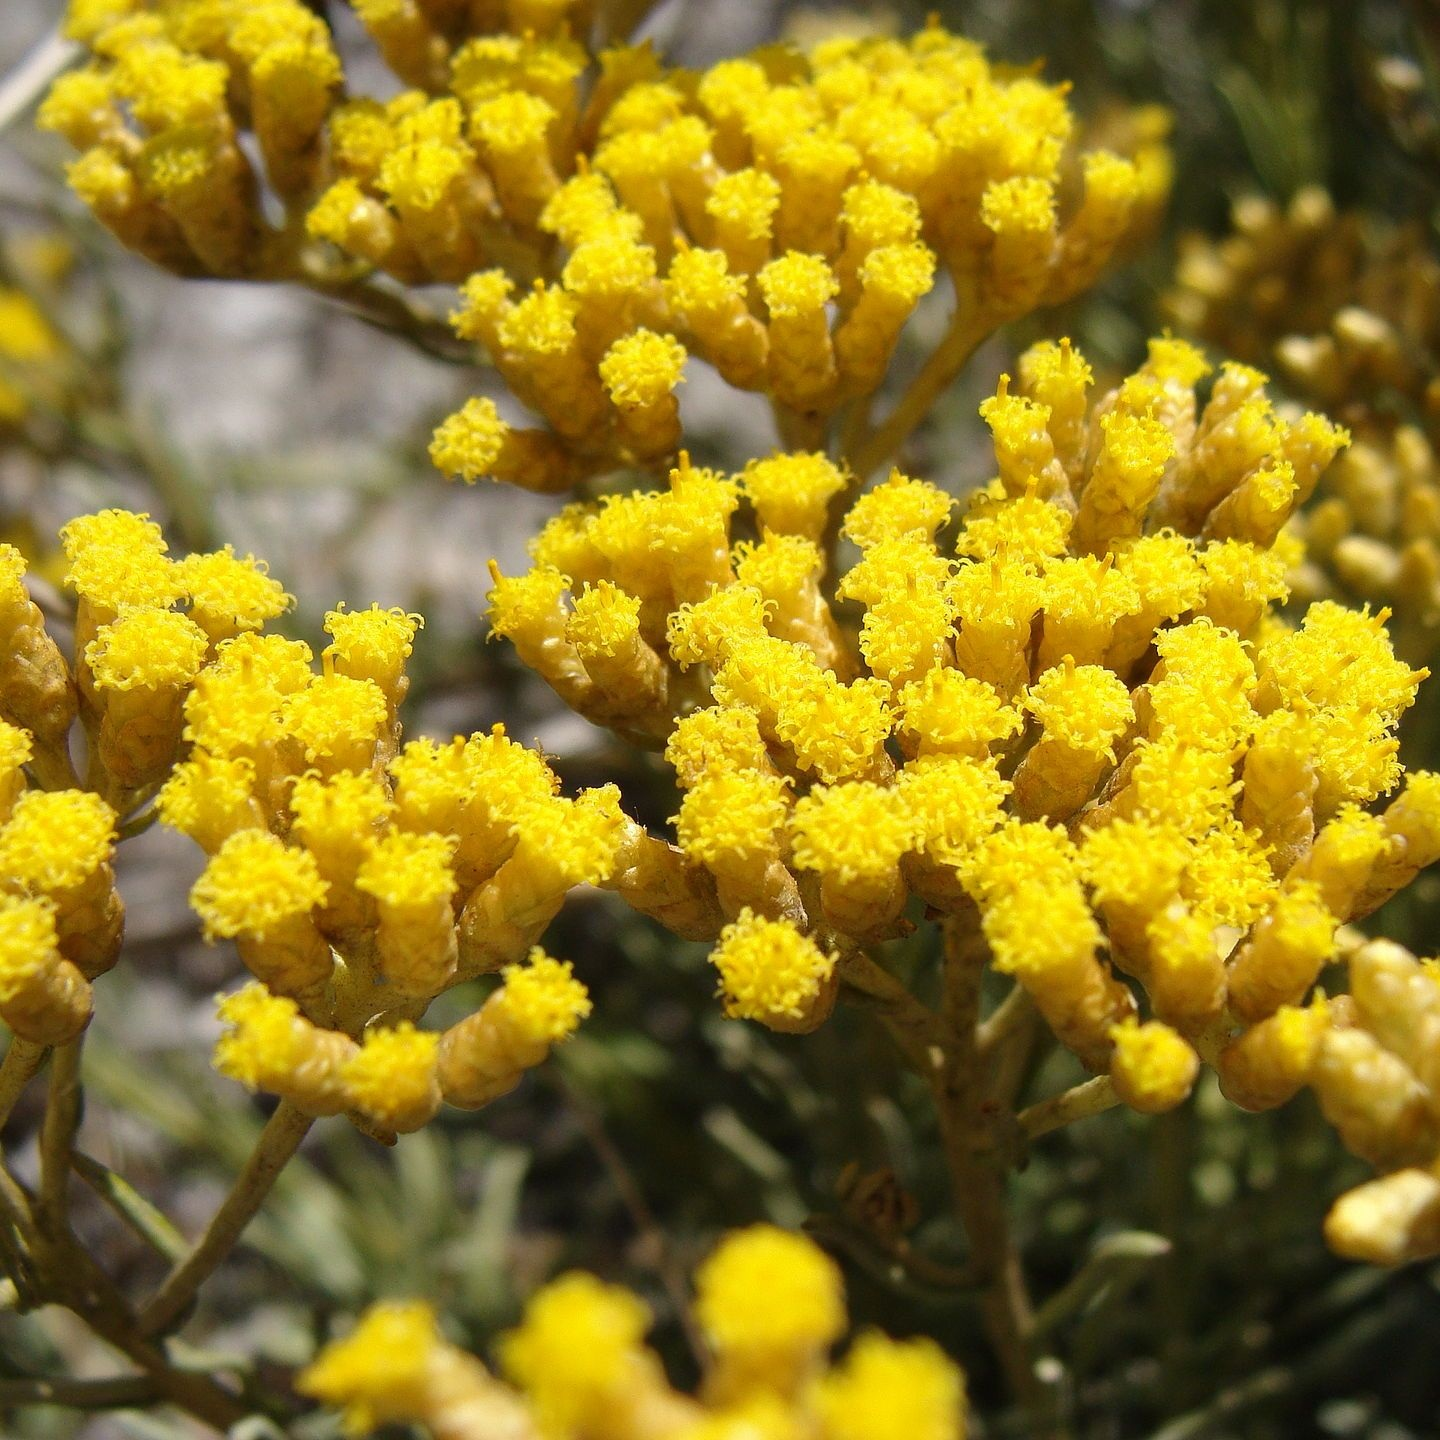 Biodynamic Helichrysum Hydrolat   Helichrysum is a natural, emollient and protective active ingredient that helps hair stay hydrated and retain nutrition during the waving treatment.